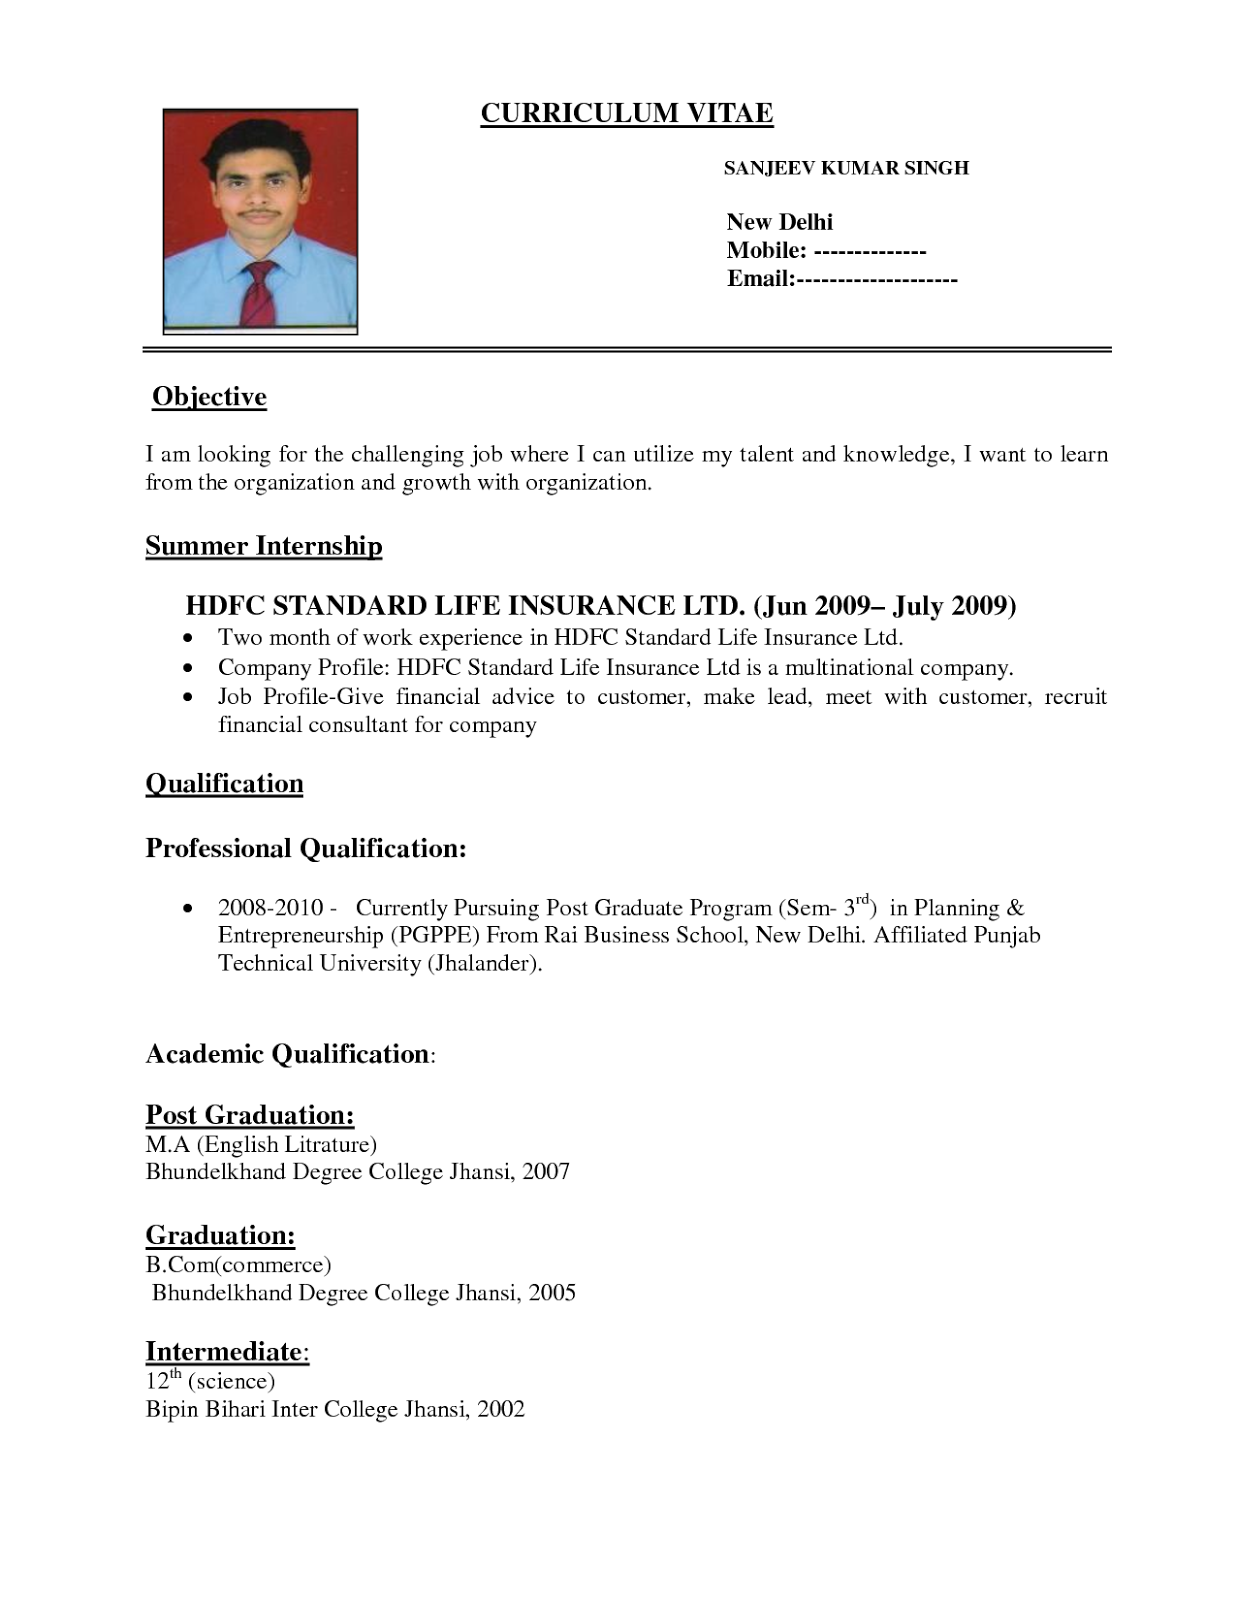 Correct Resume Format Choosing The Right Resume Format Is Critical To Presenting Your